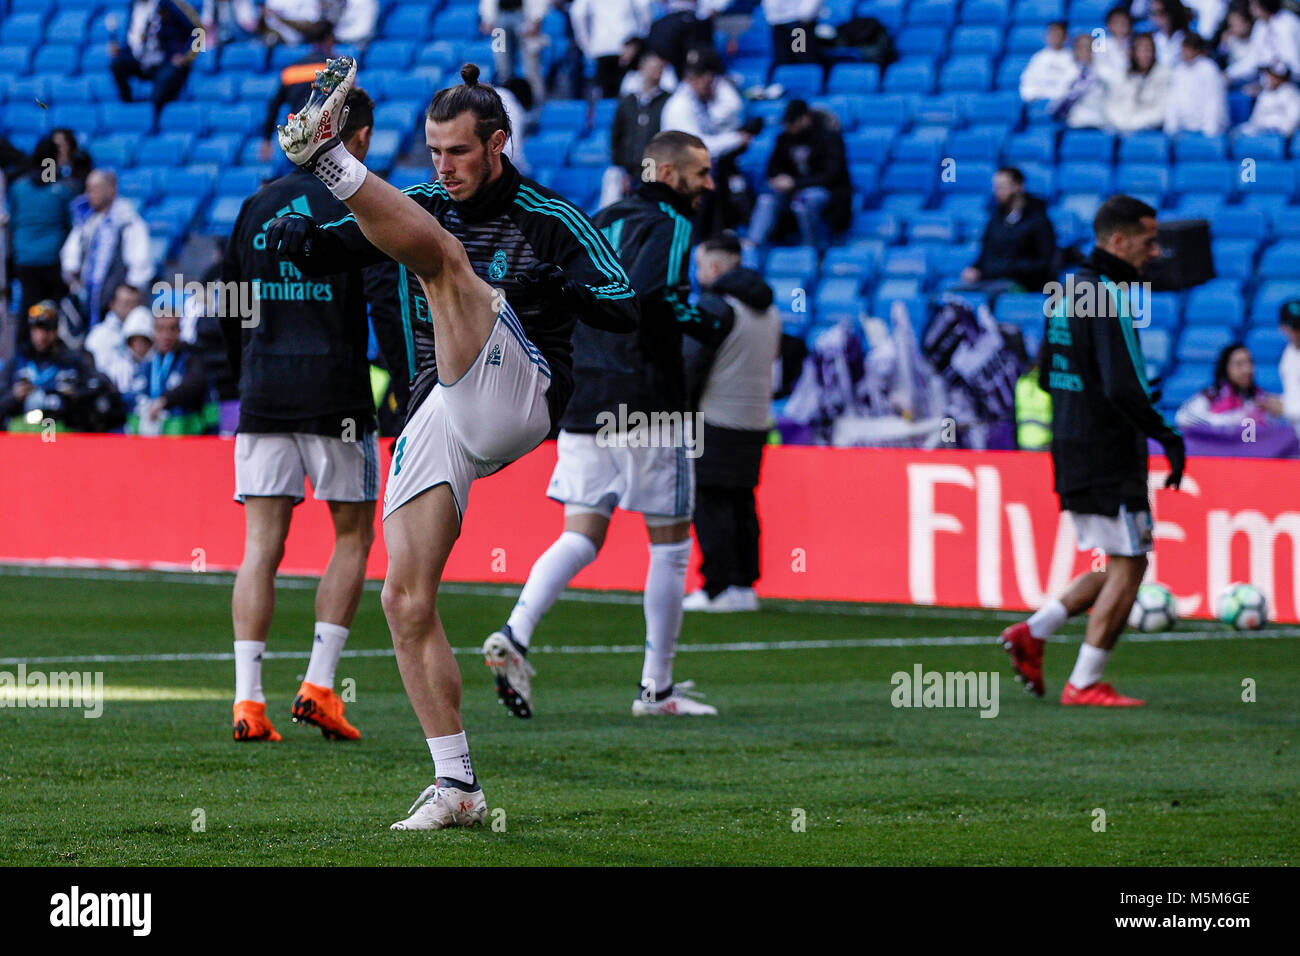 super popular 1601f f0b10 Gareth Bale (Real Madrid) Pre-match warm-up La Liga match ...